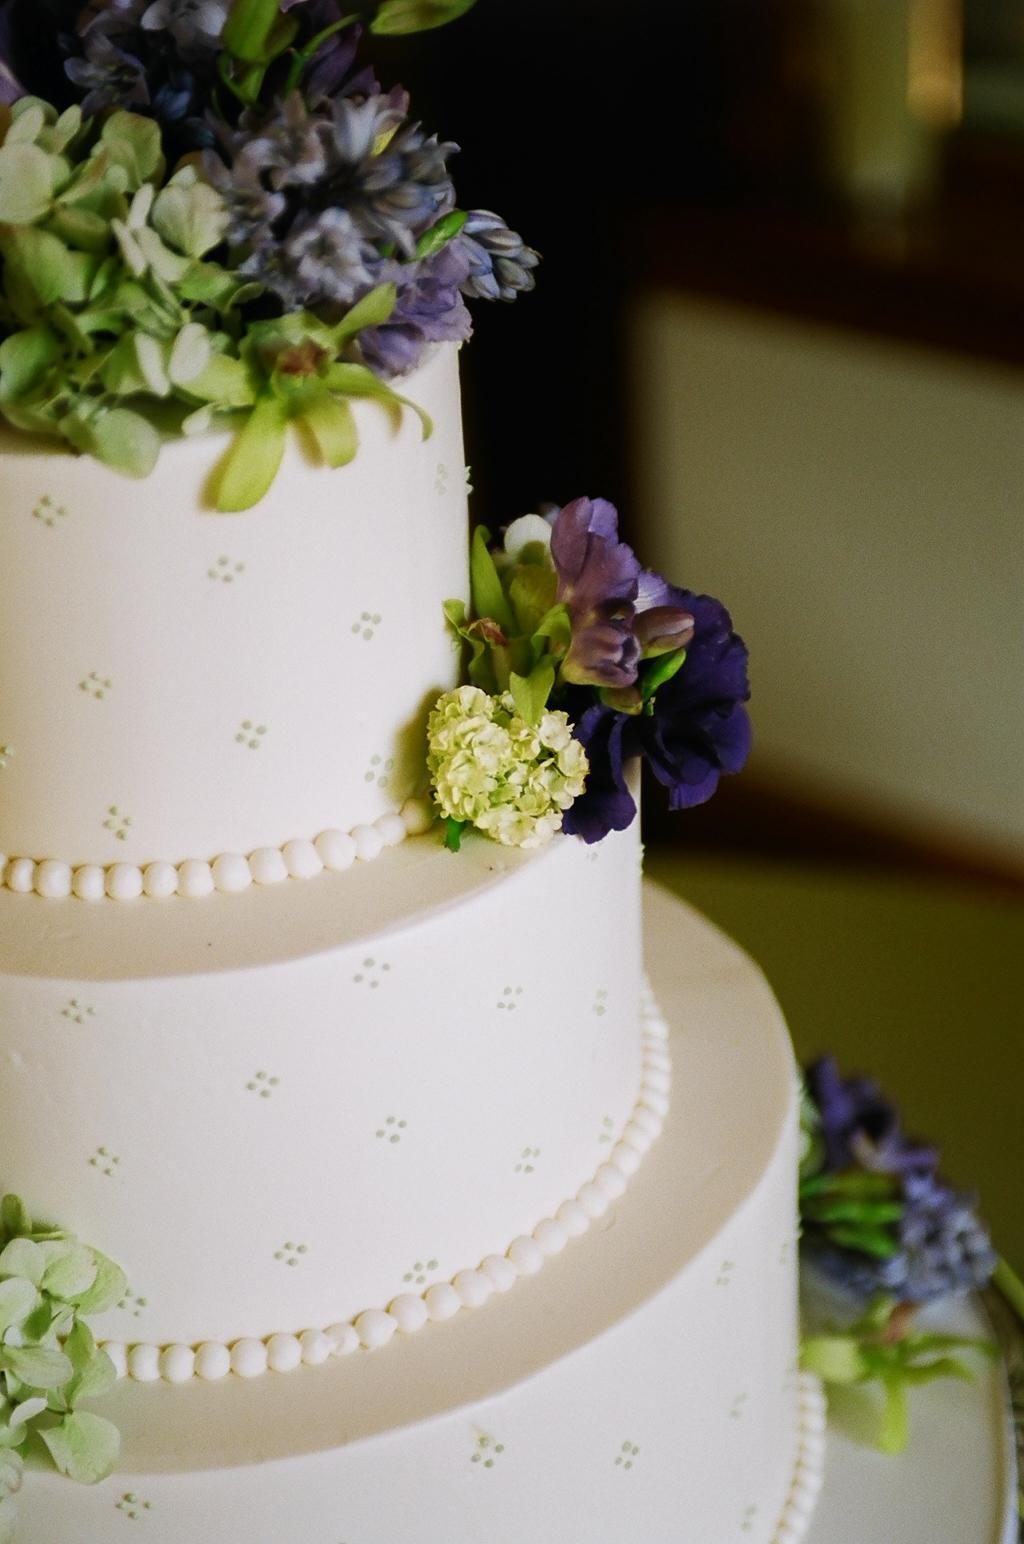 Reception, Flowers & Decor, Cakes, purple, green, cake